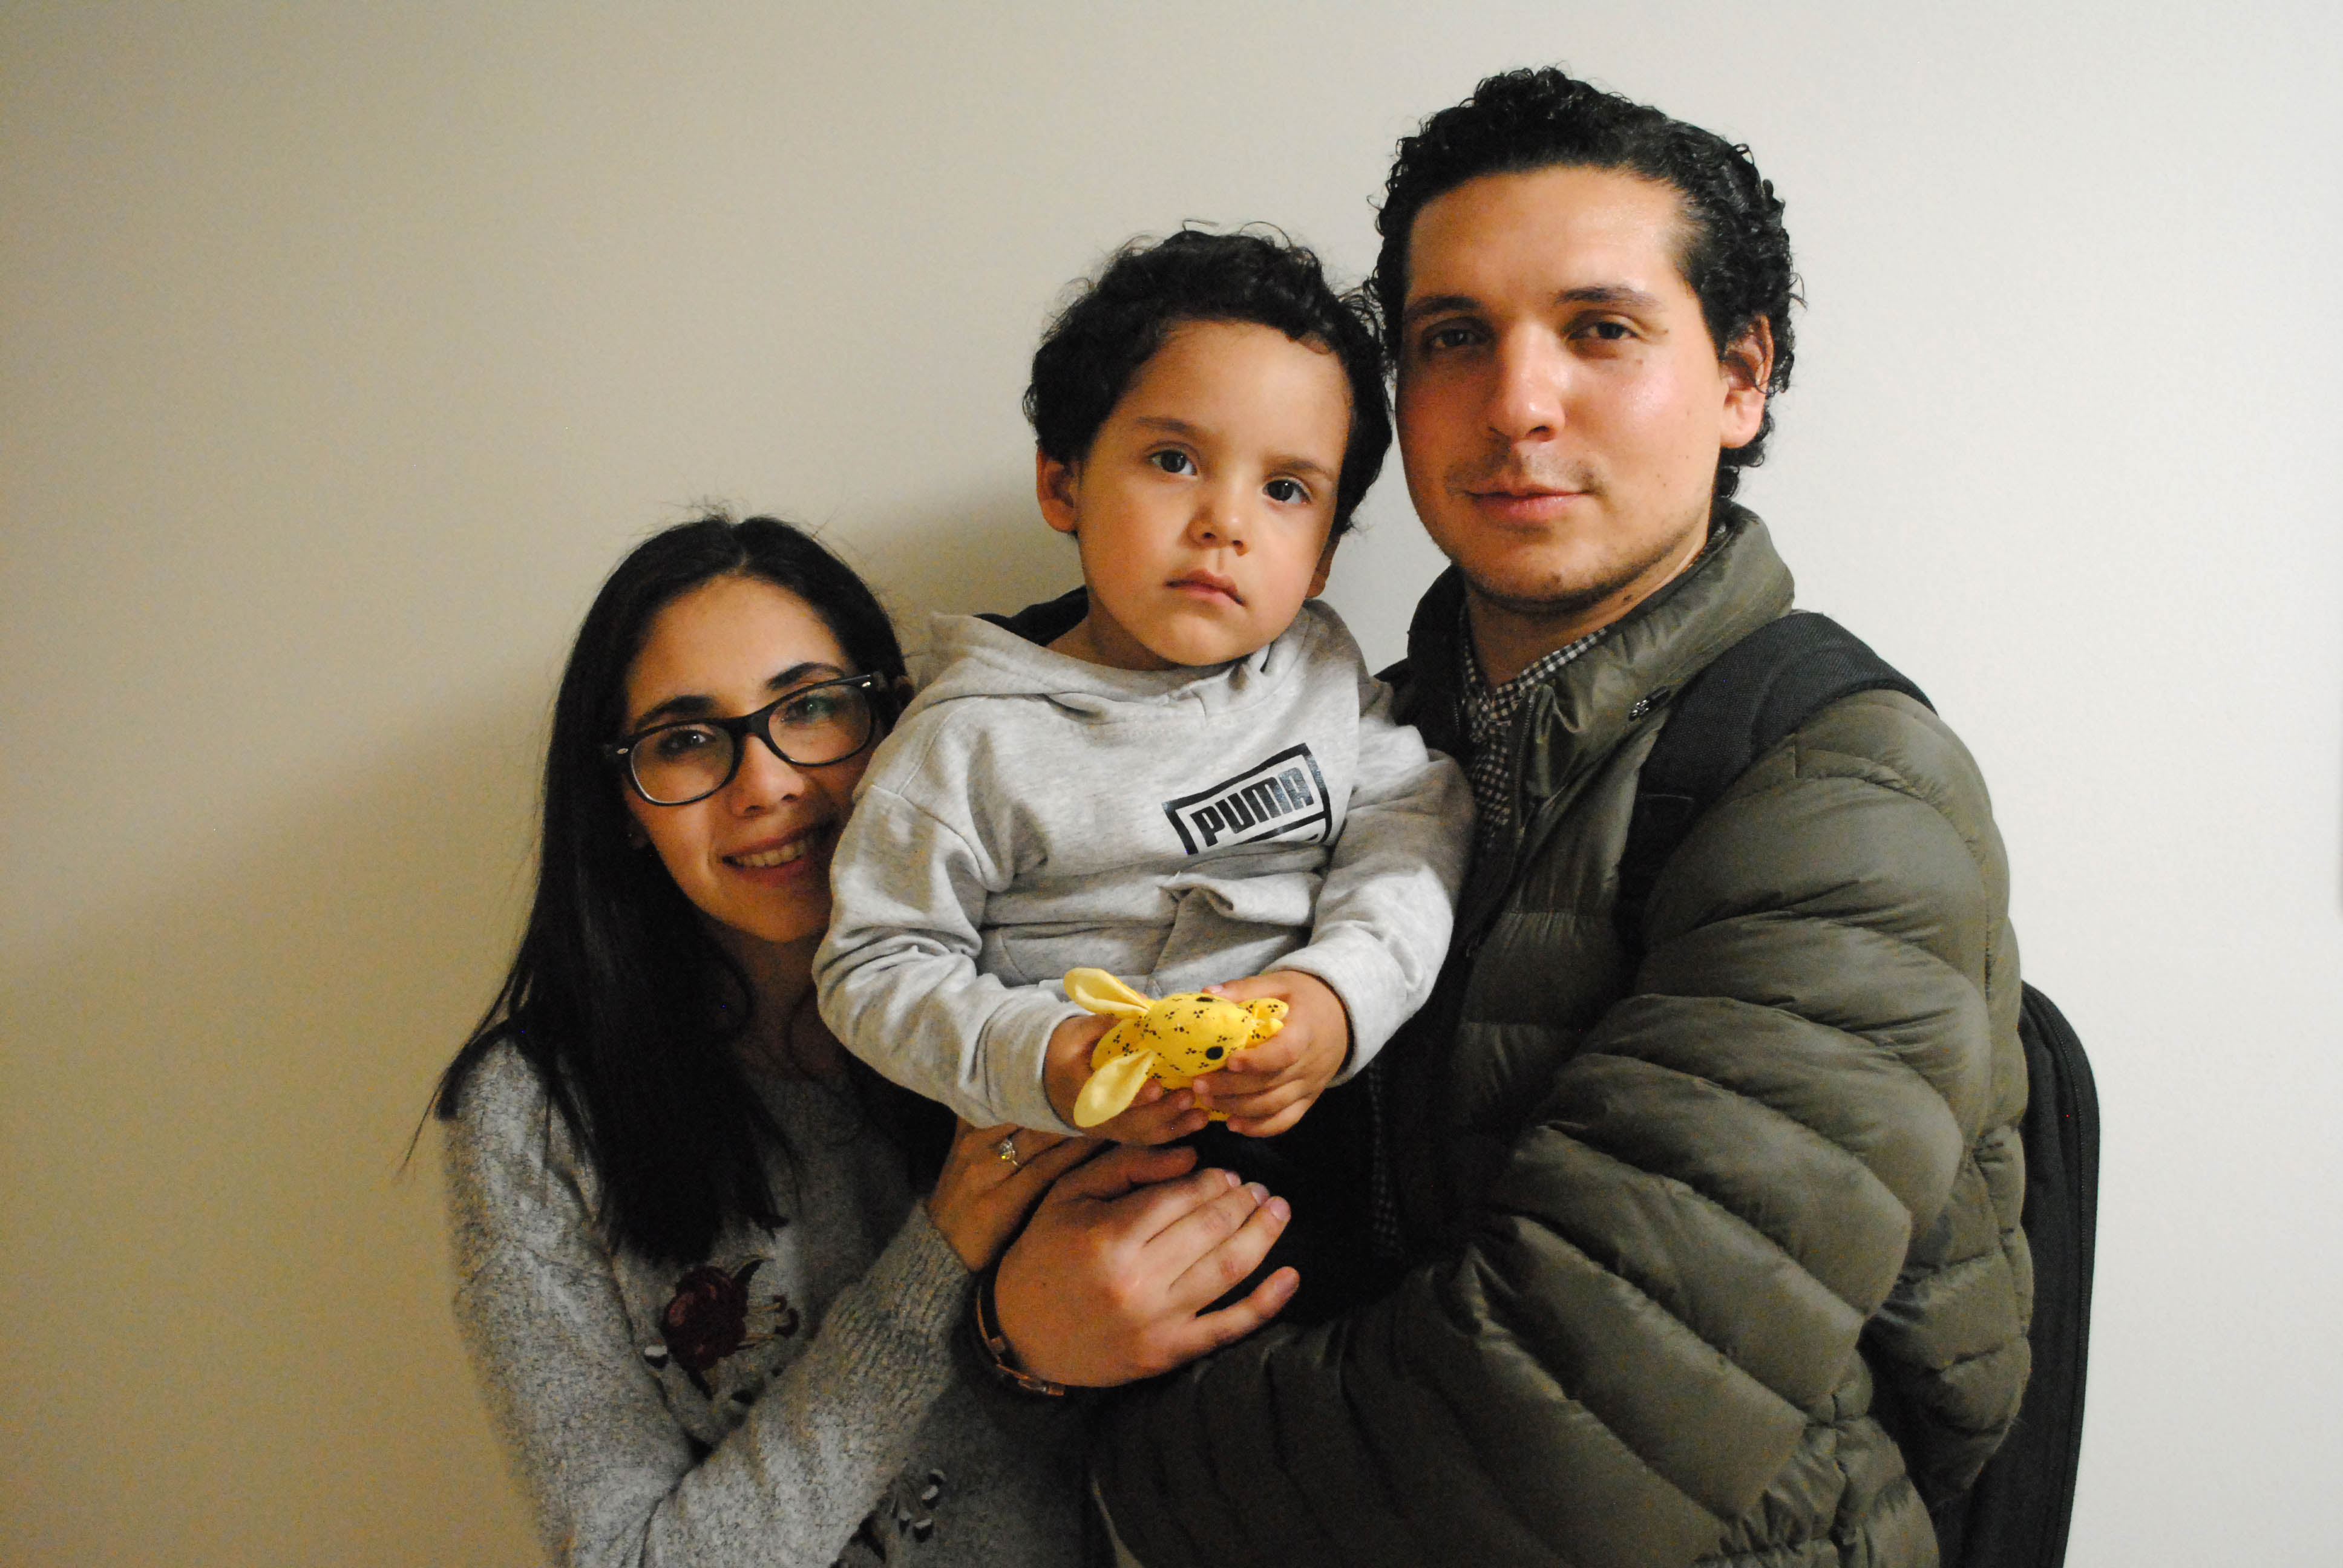 Emiliano Martínez and family